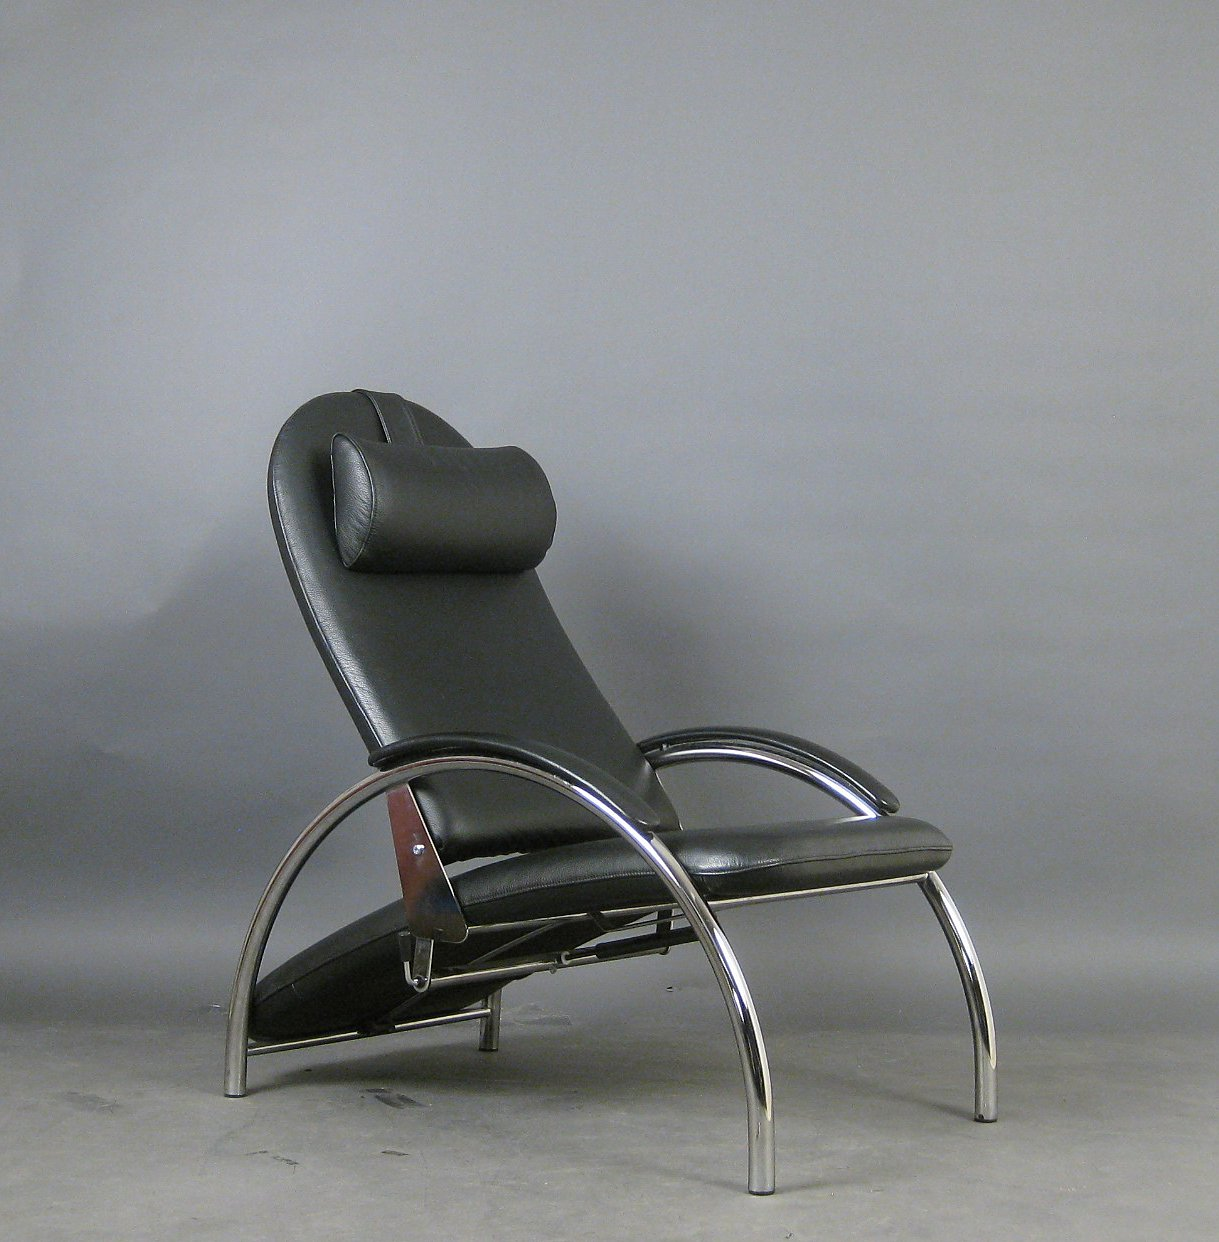 Great Ingmar U Knut Relling Relax Sessel Lounge Sessel Modell Optima Fr  Rybo As Lauritzcom With Relax Sessel